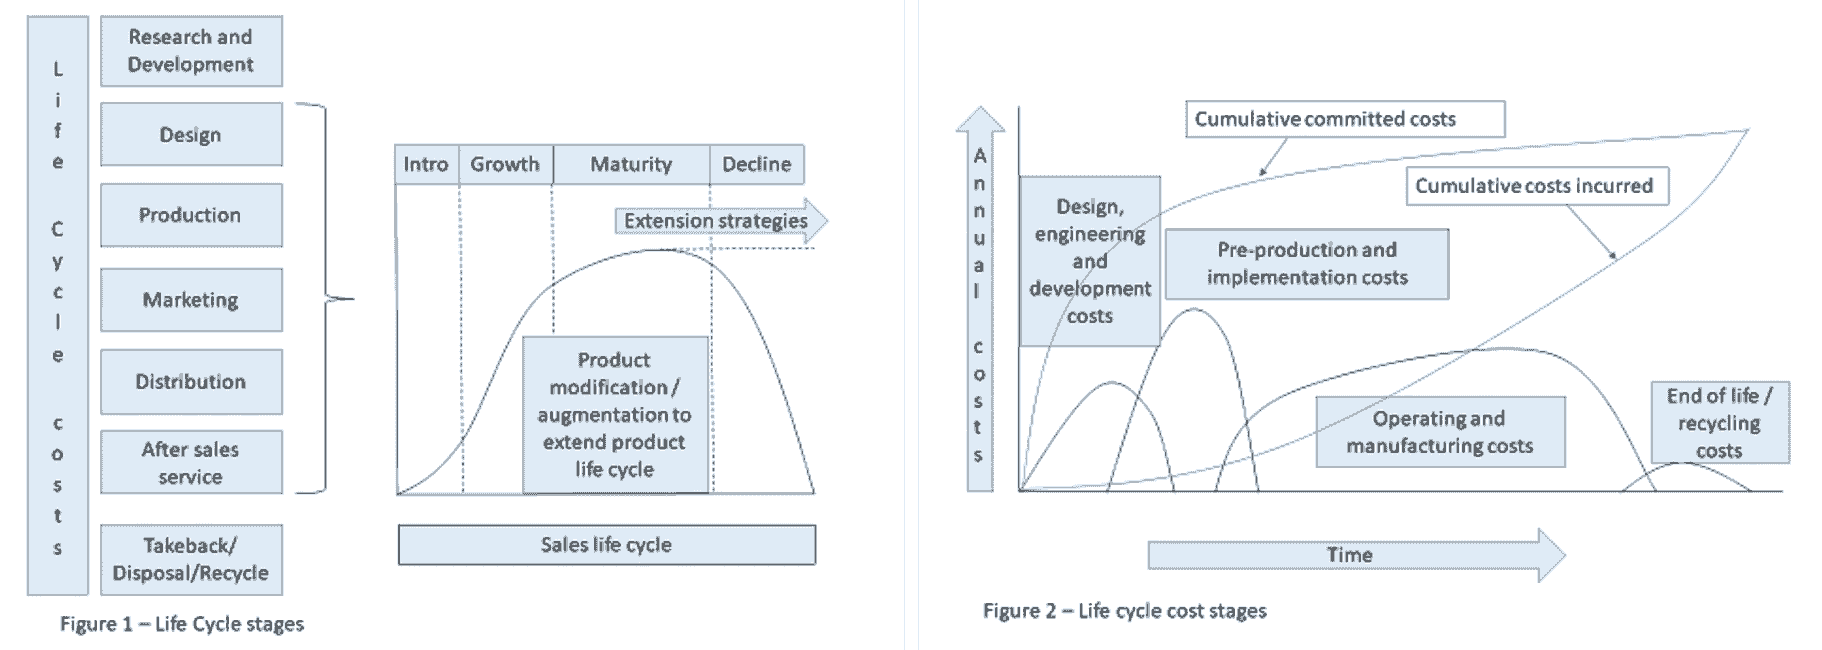 The image shows the stages of product life cycle from research and development through to end of use